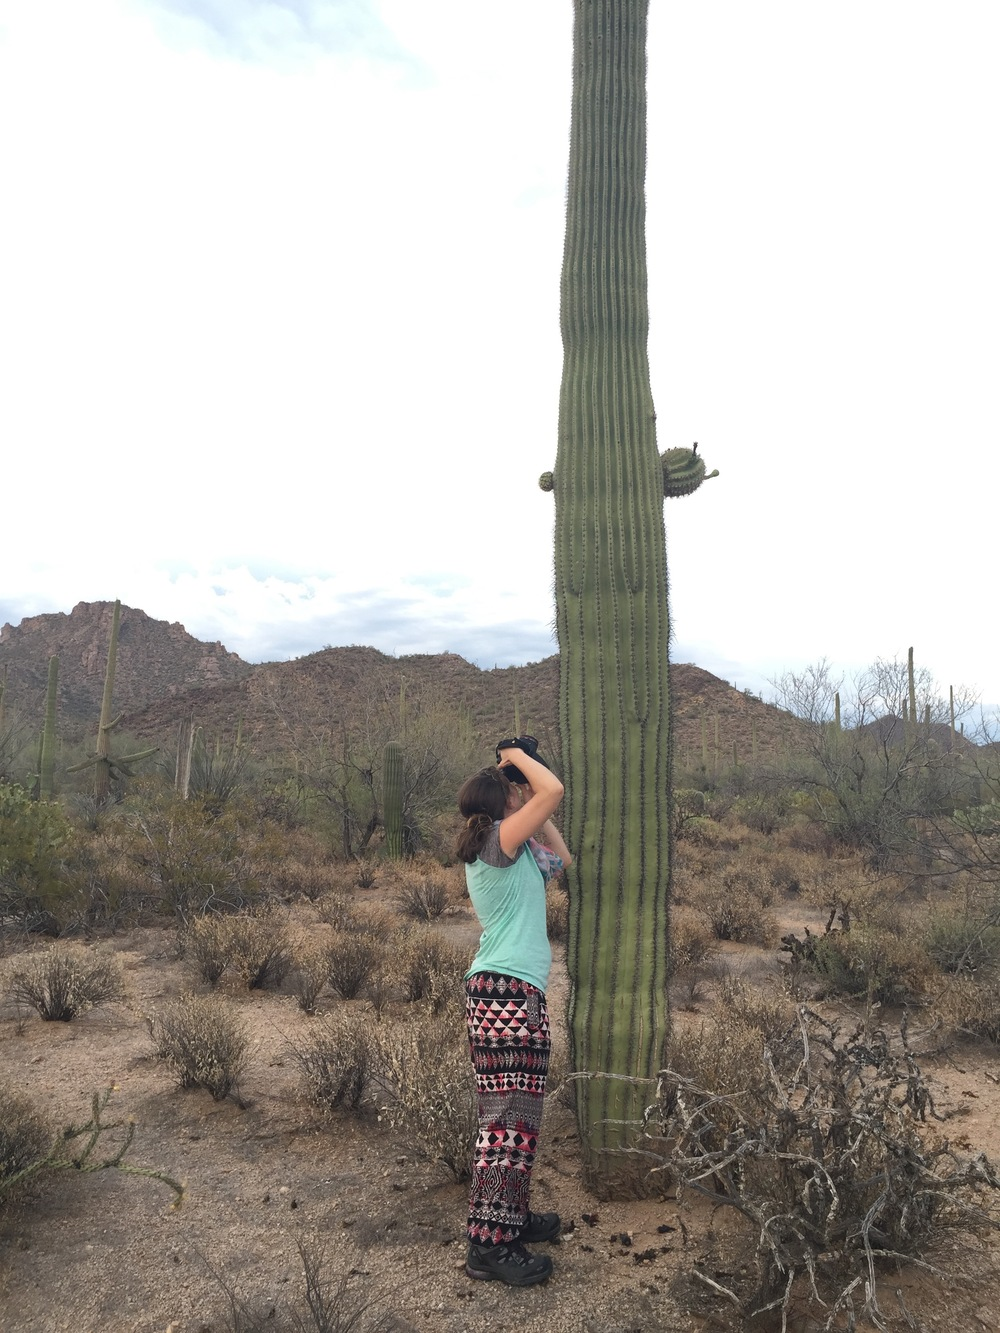 I remember Daniel making fun of me because I thought that these cactus grew like I had seen in cartoons and I was very surprised to learn that was not the case.